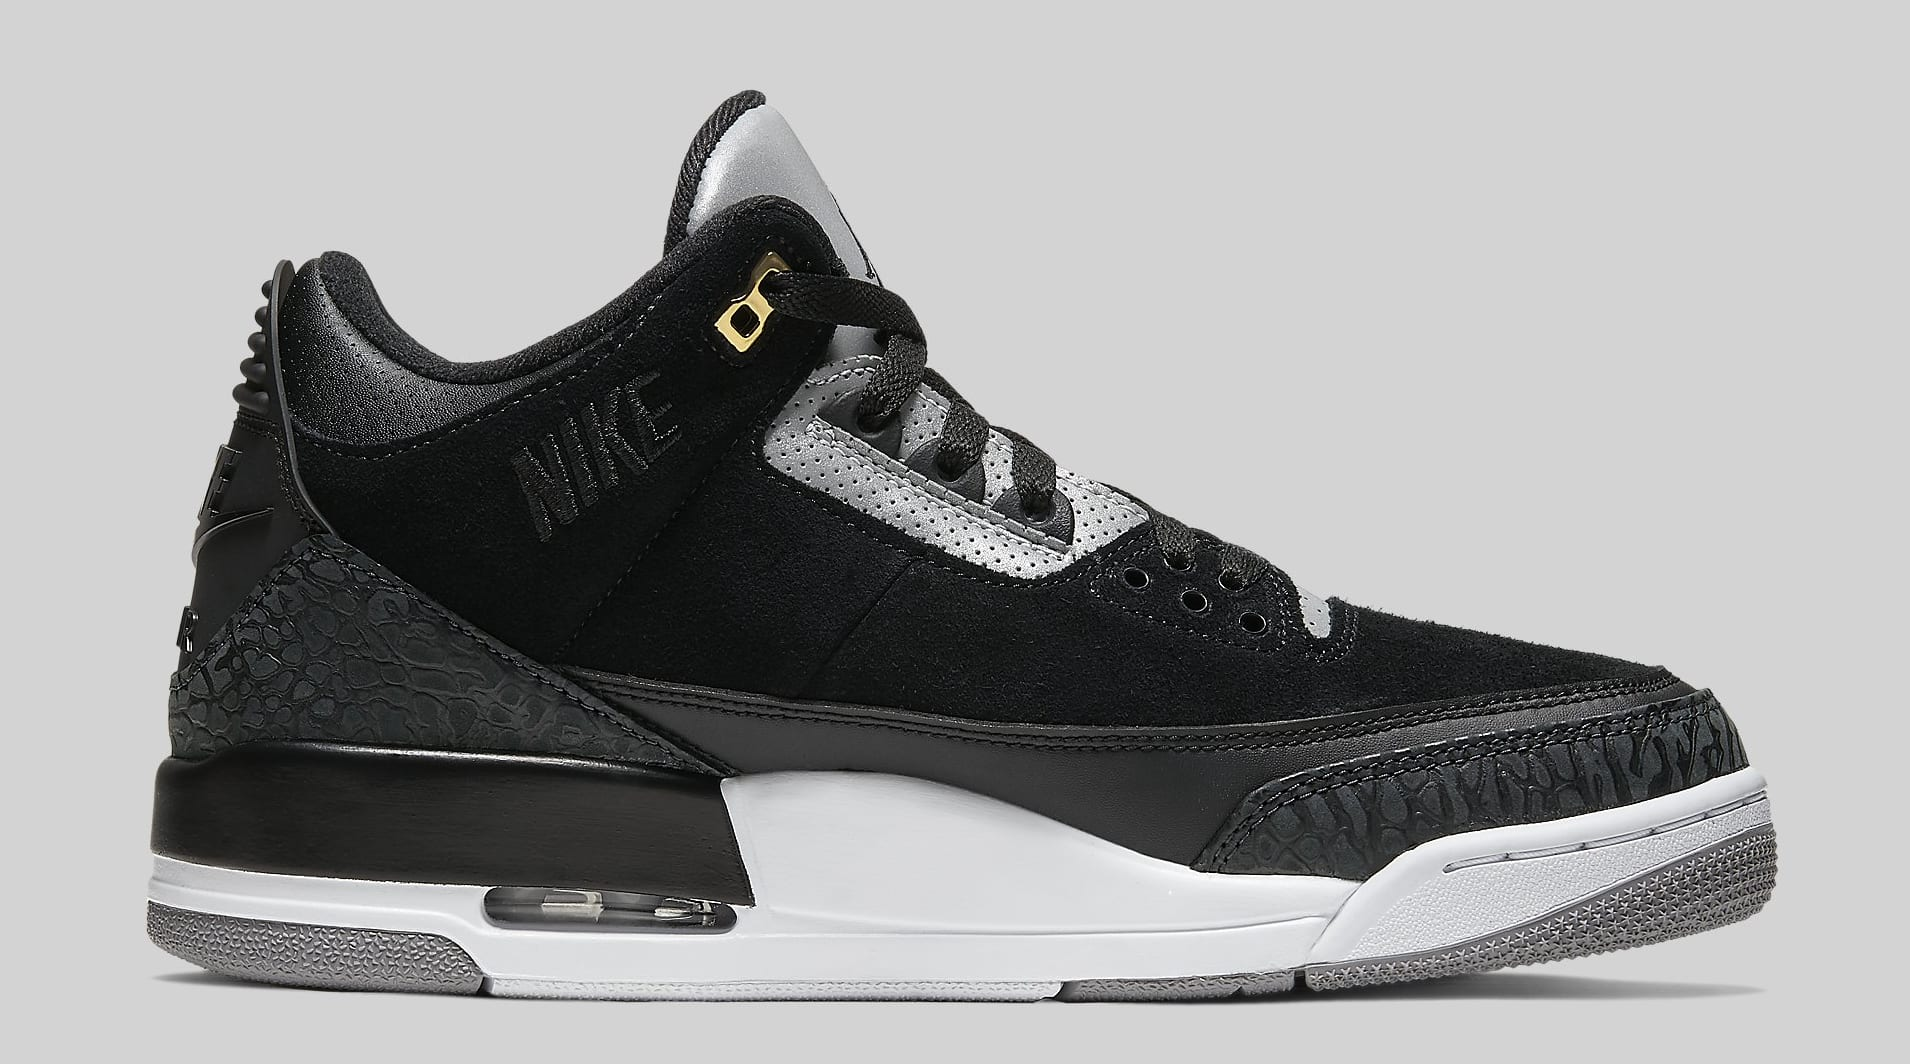 Air Jordan 3 Tinker 'Black Cement' CK4348-007 Medial